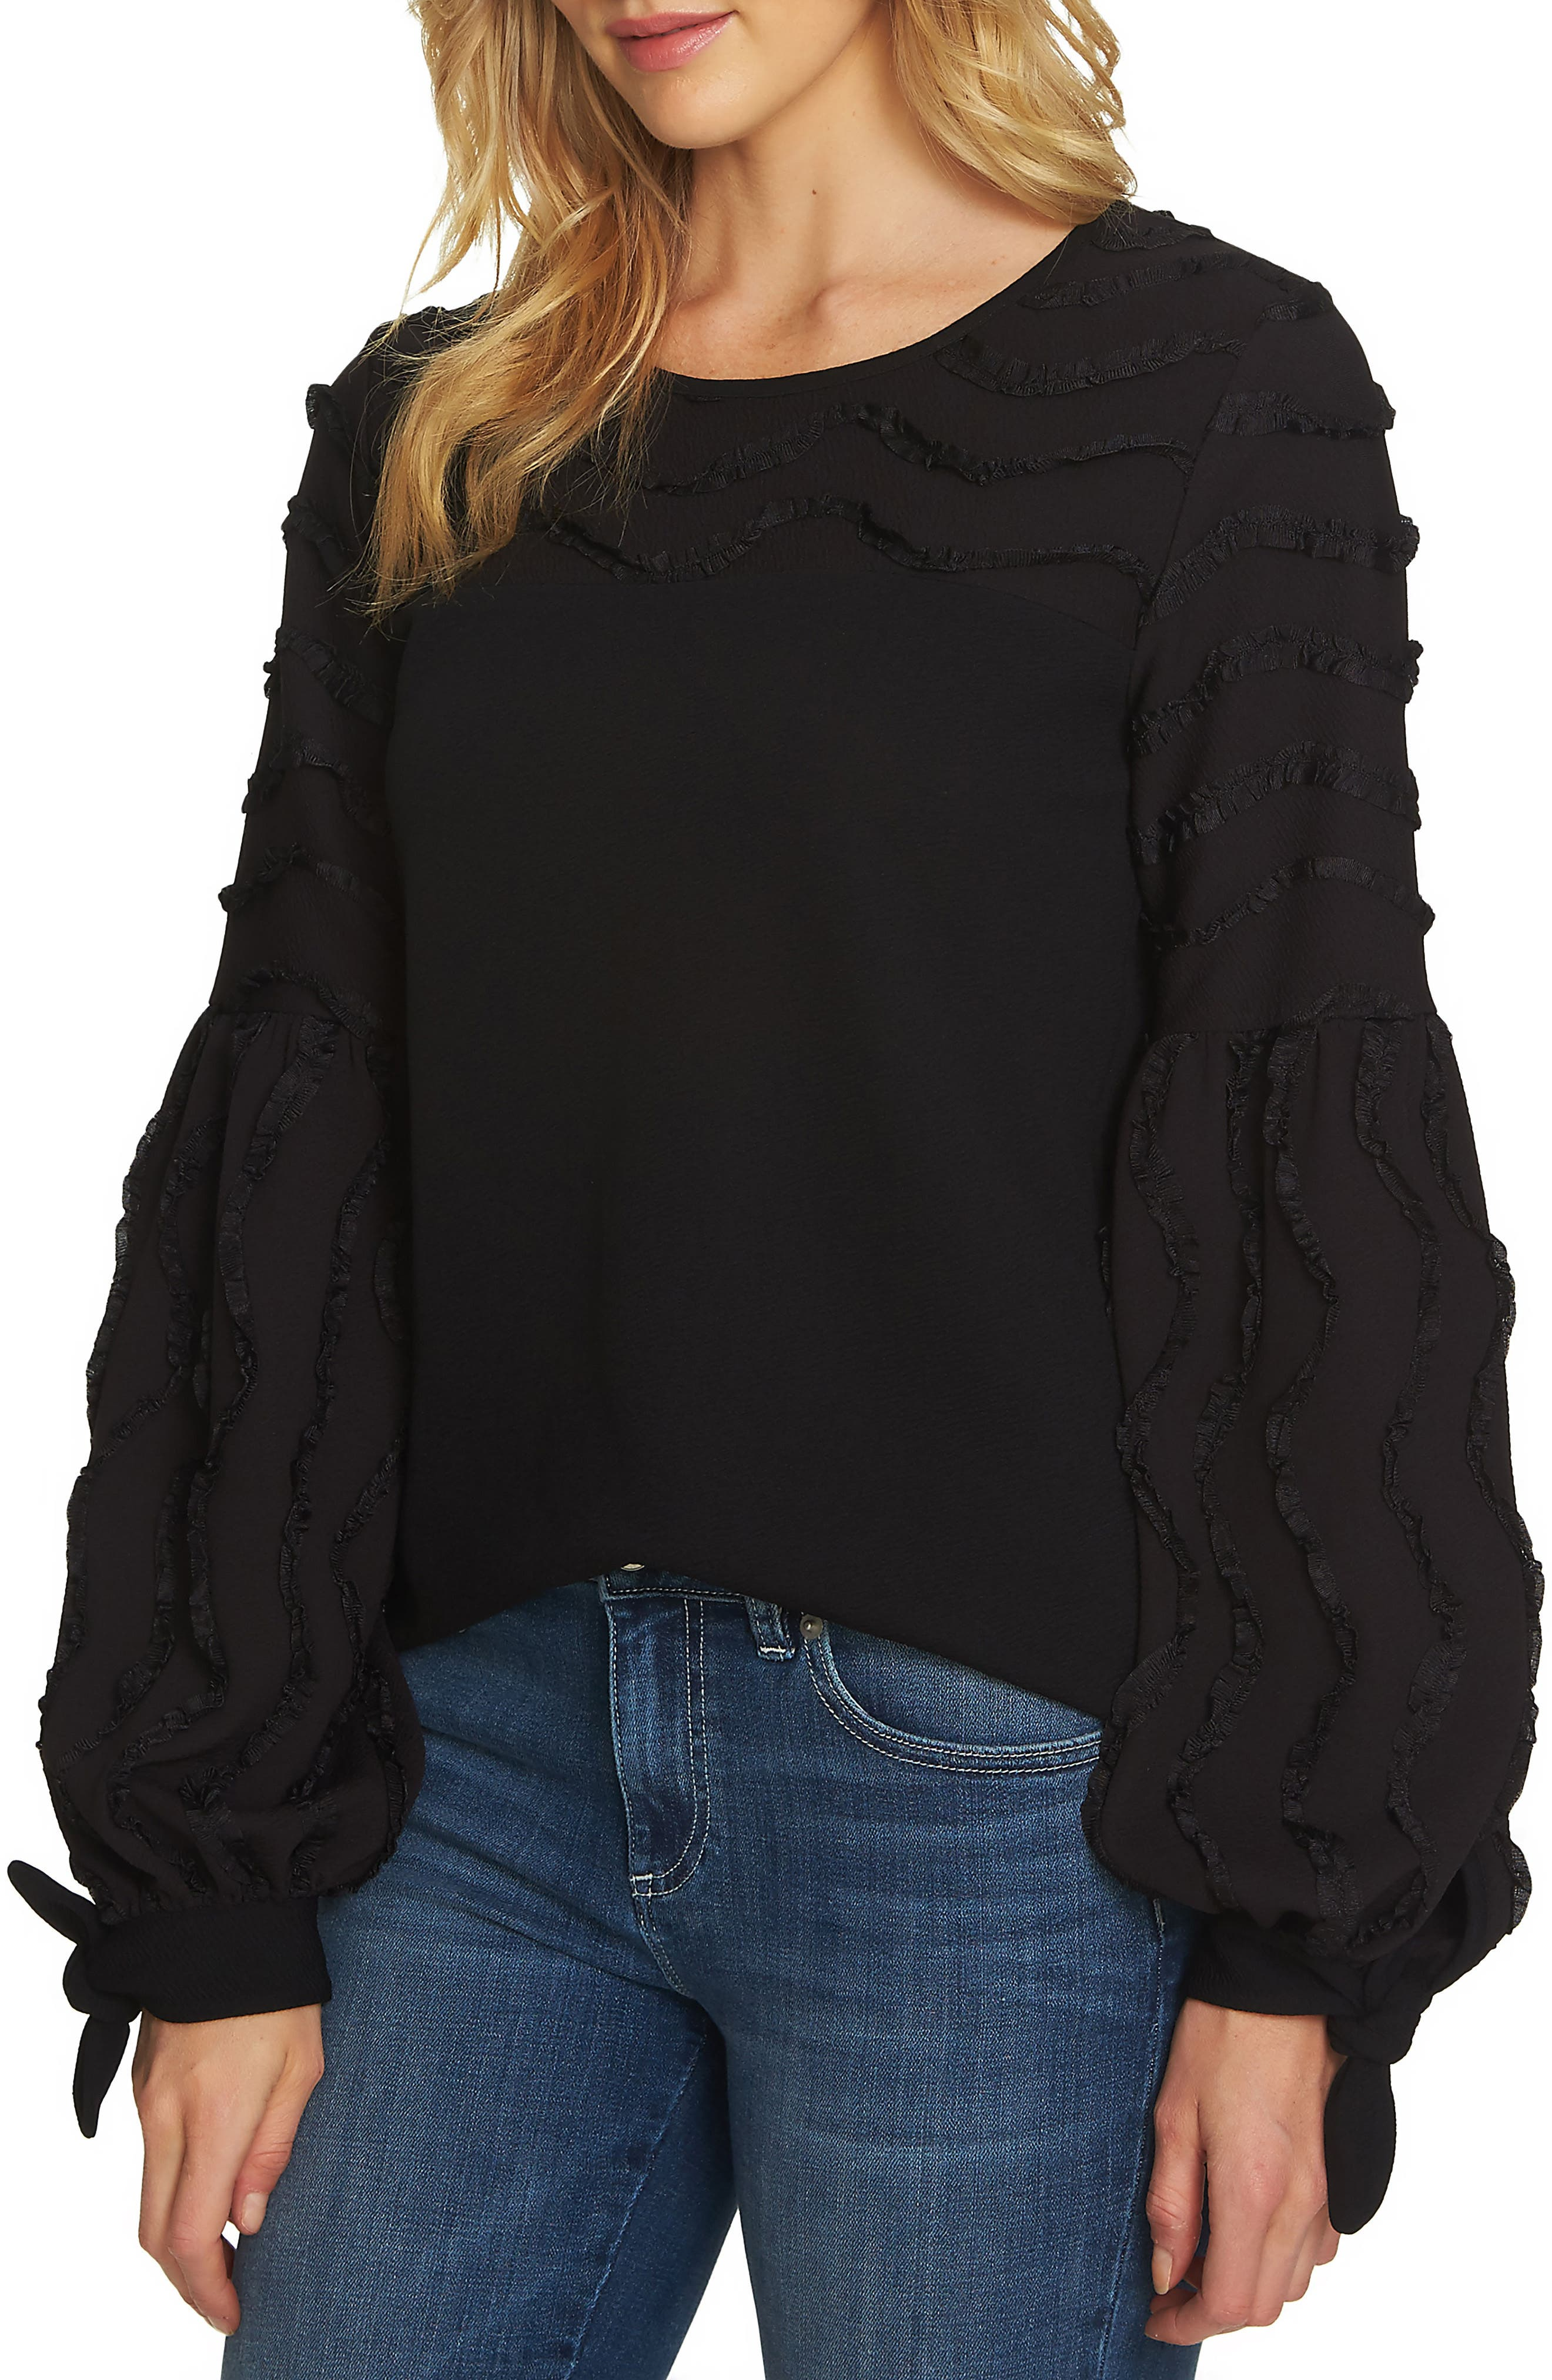 Balloon Sleeve Textured Knit Top,                             Main thumbnail 1, color,                             006